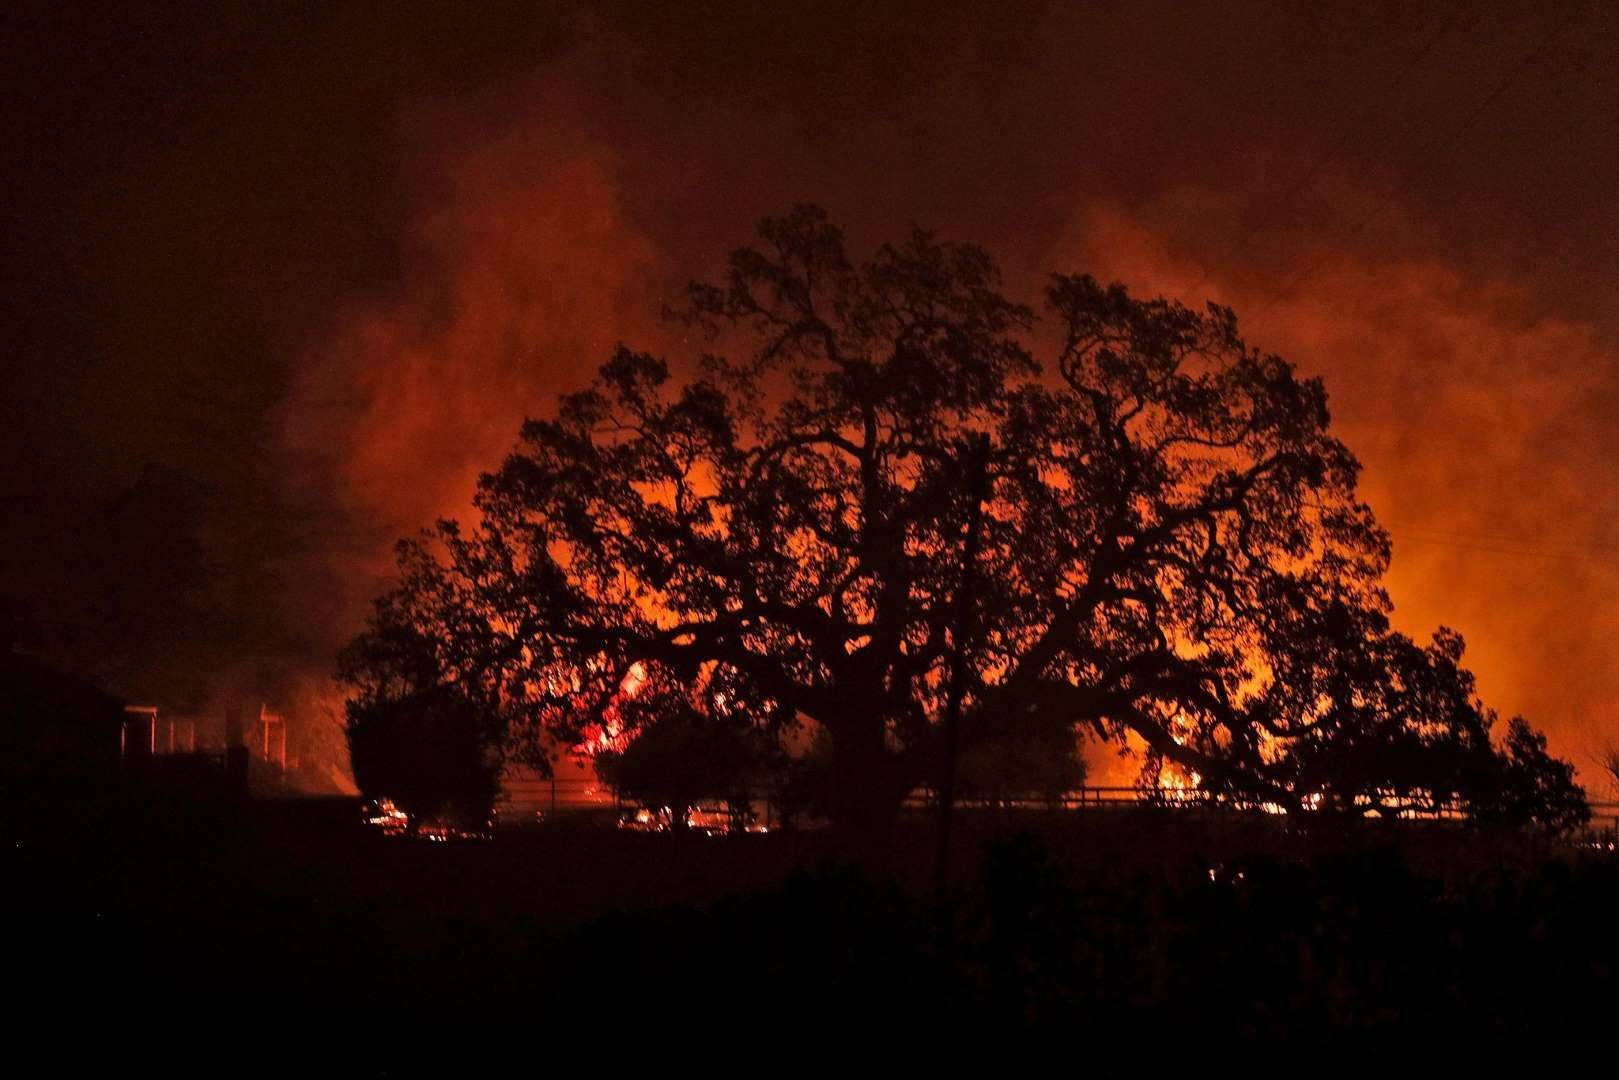 10 Dead As Wine Country Fires Burn At Least 1 500 Structures Force Evacuations A Structure Burns Behind An Oak Tree As A Wild Fi Wine Country Fire Wild Fire